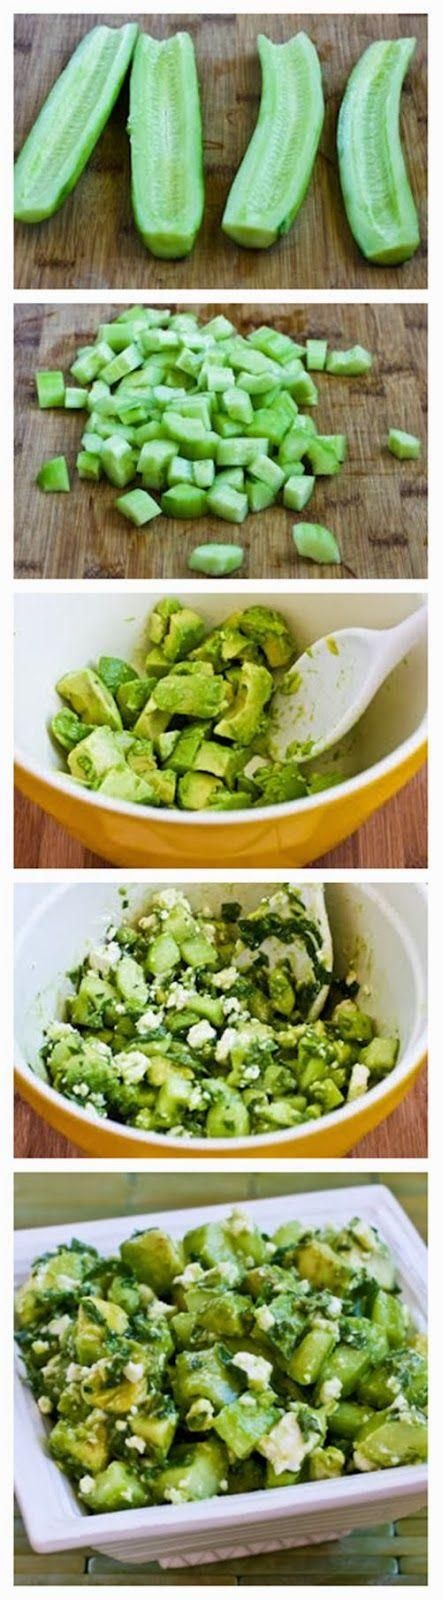 Cucumber and Avocado Salad Recipe with Lime, Mint, and Feta || Kalyn's Kitchen